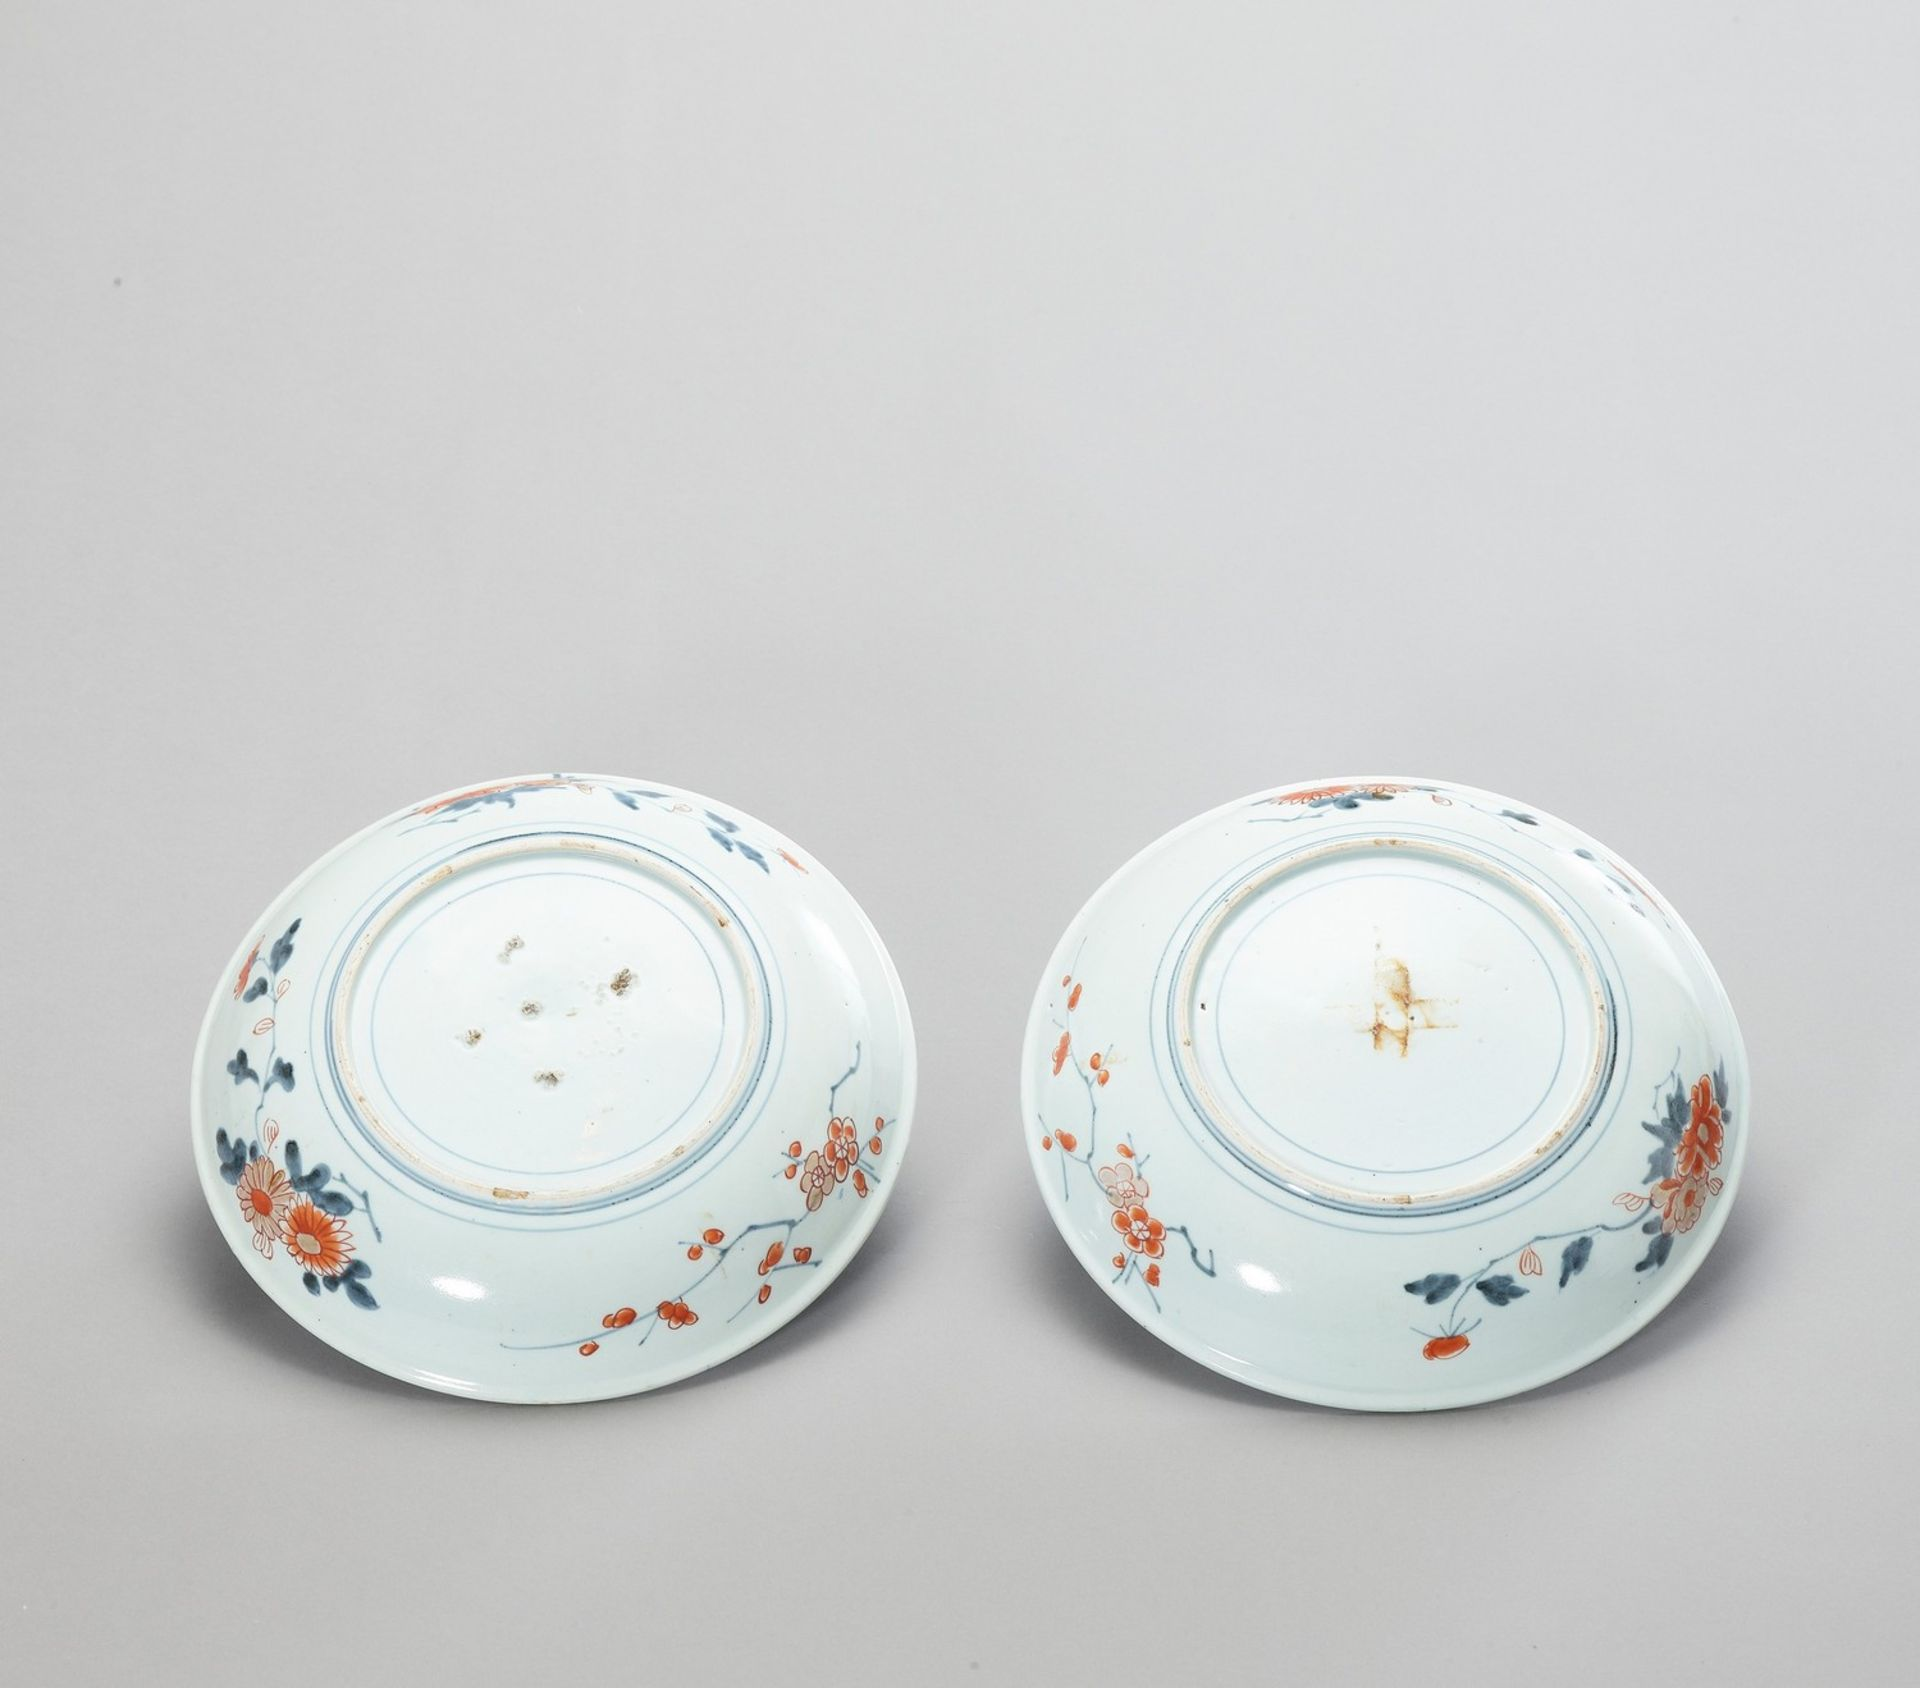 A PAIR OF IMARI PORCELAIN DISHES - Image 3 of 4